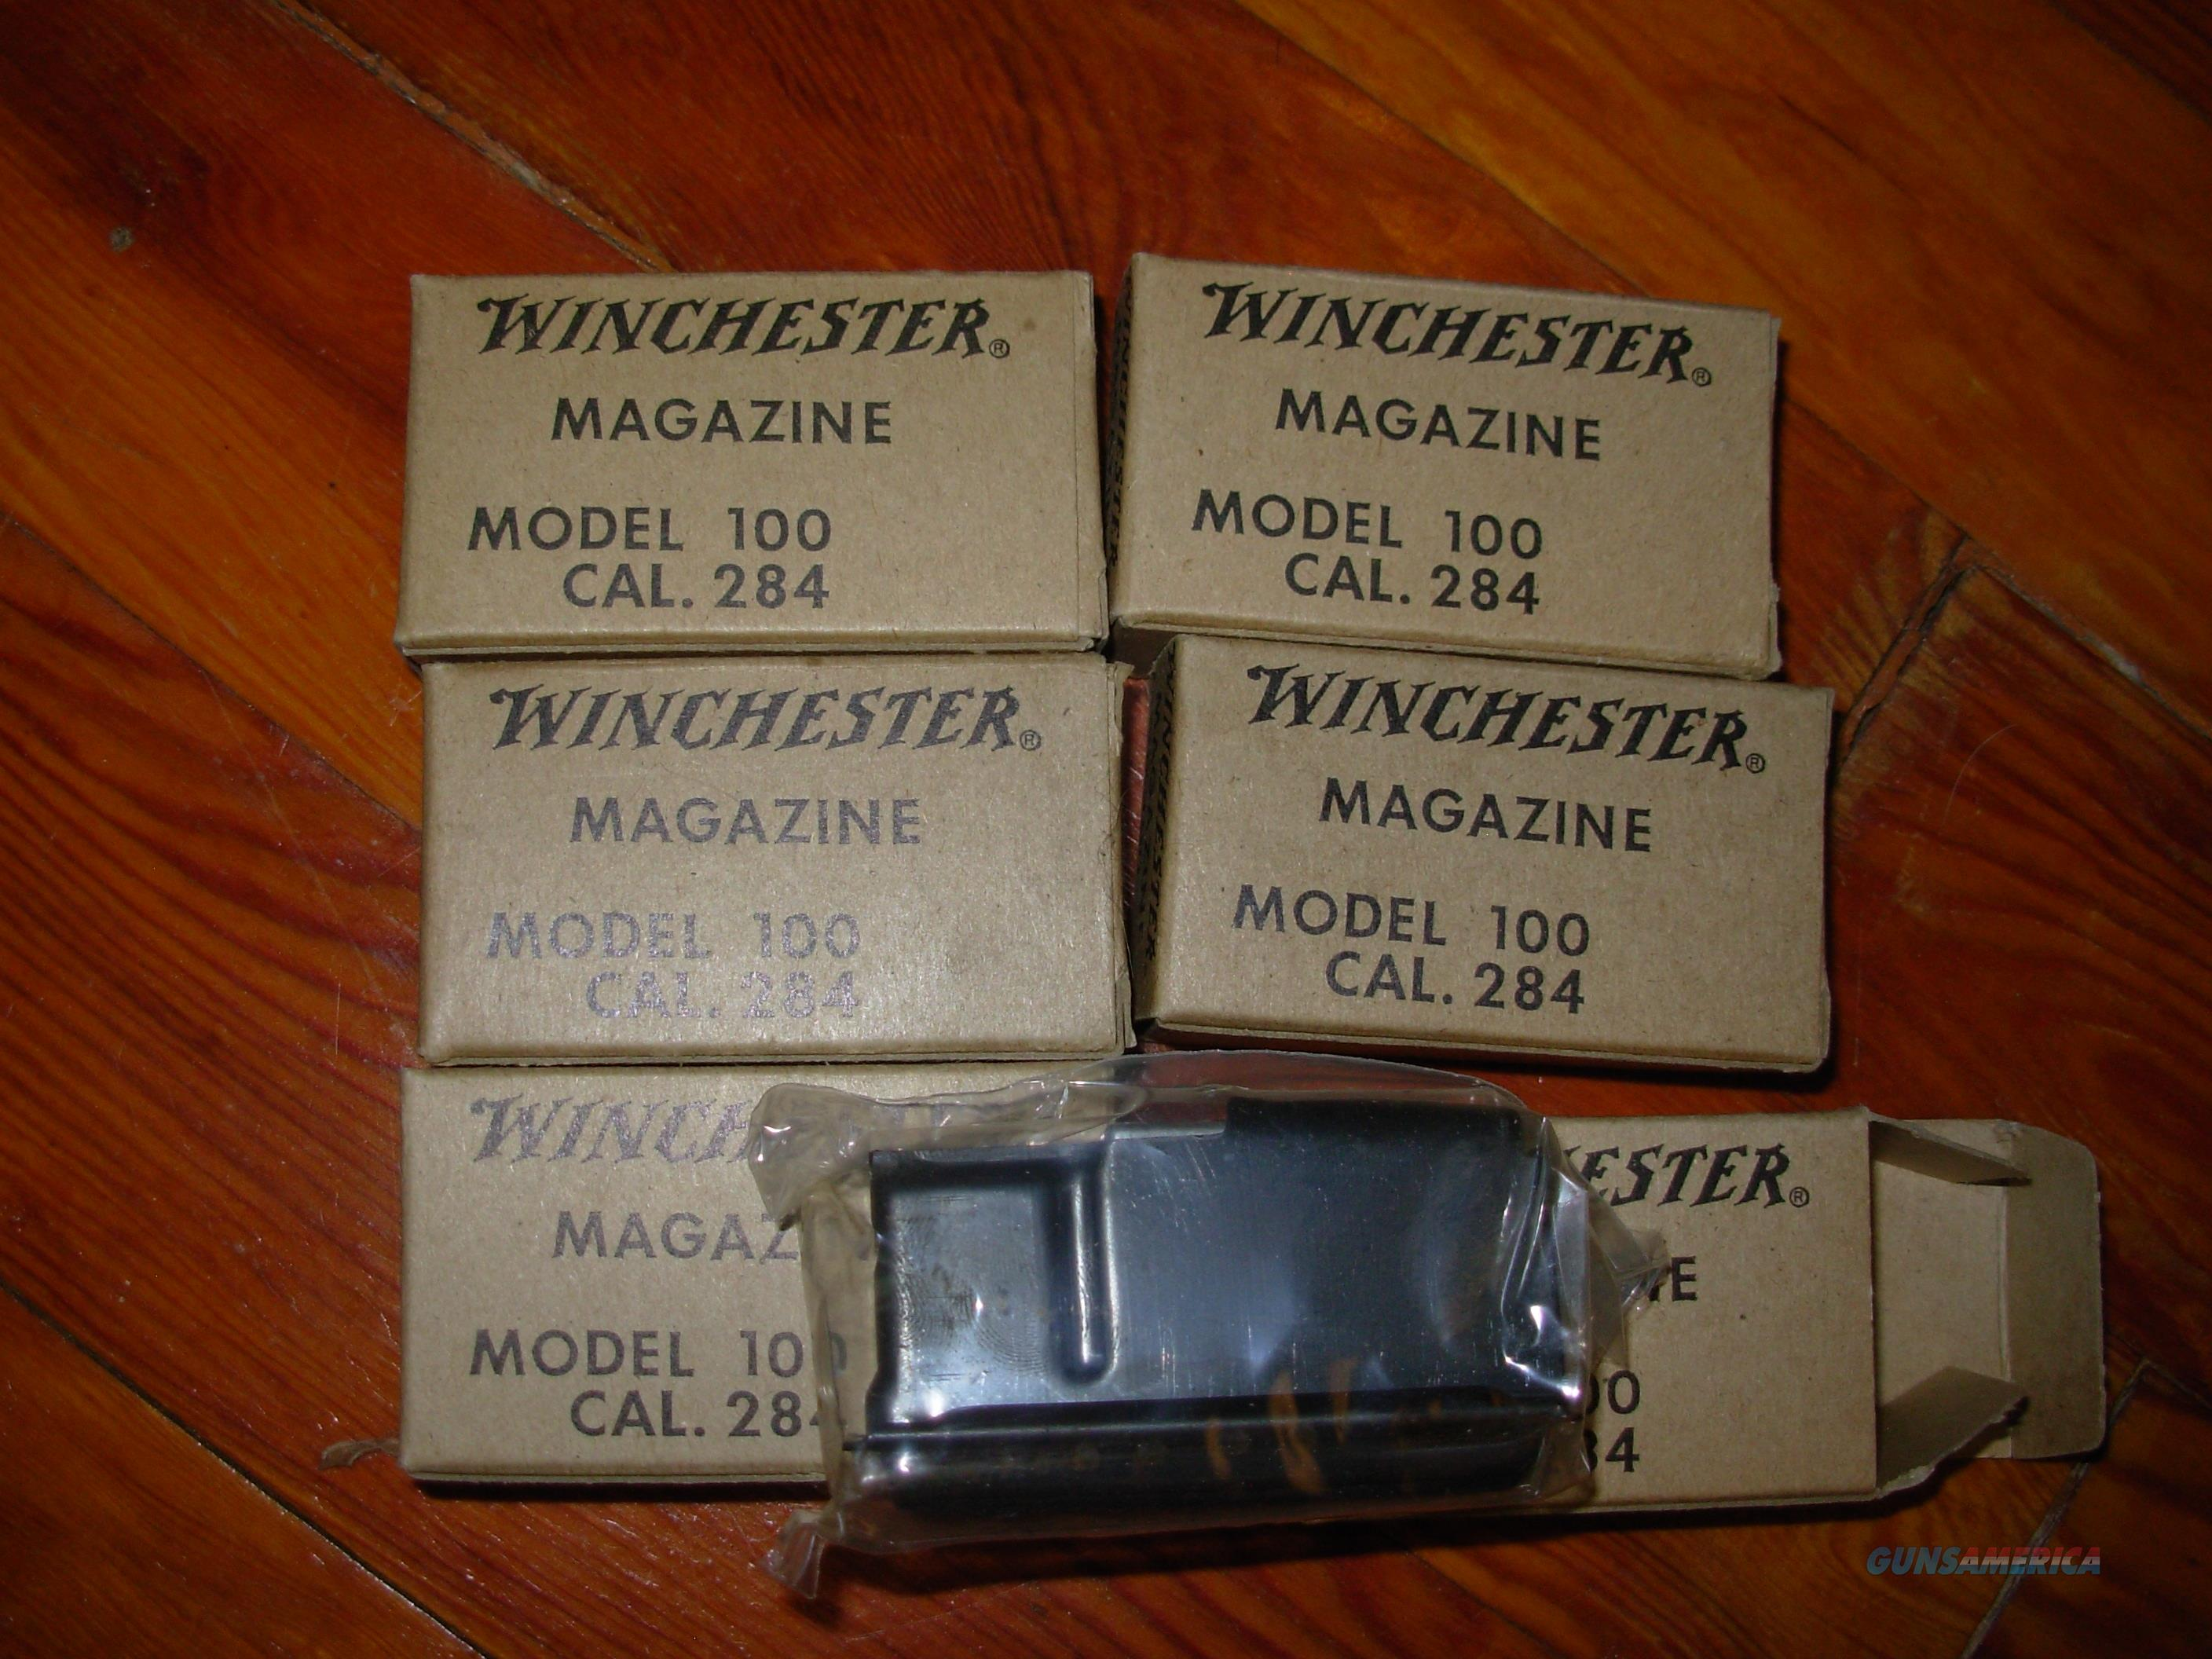 WINCHESTER .284 MAGAZINES FOR MOD, 100 AUTO. & MOD. 88 LEVER  Non-Guns > Magazines & Clips > Rifle Magazines > Other